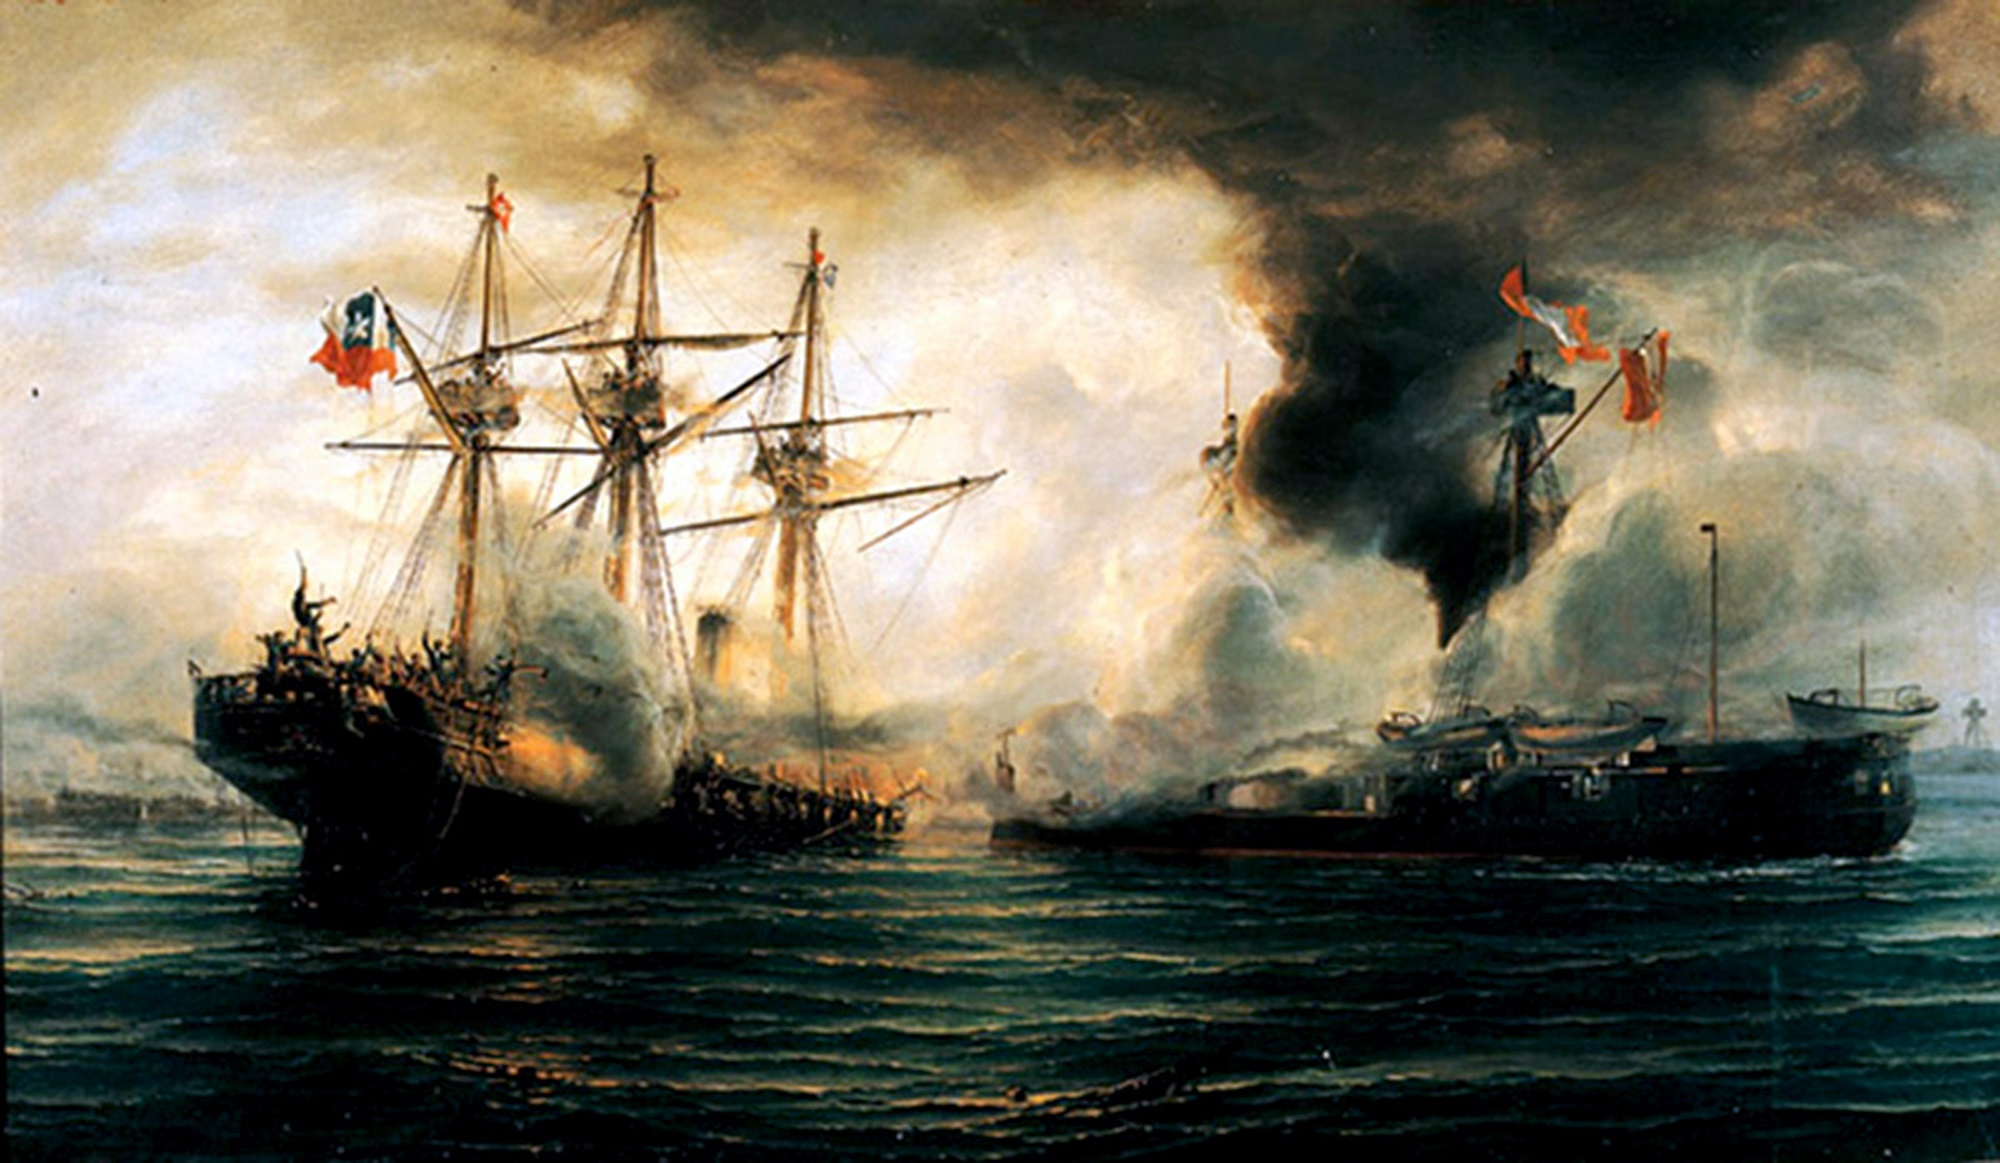 File:Sinking of the Esmeralda during the battle of Iquique.jpg